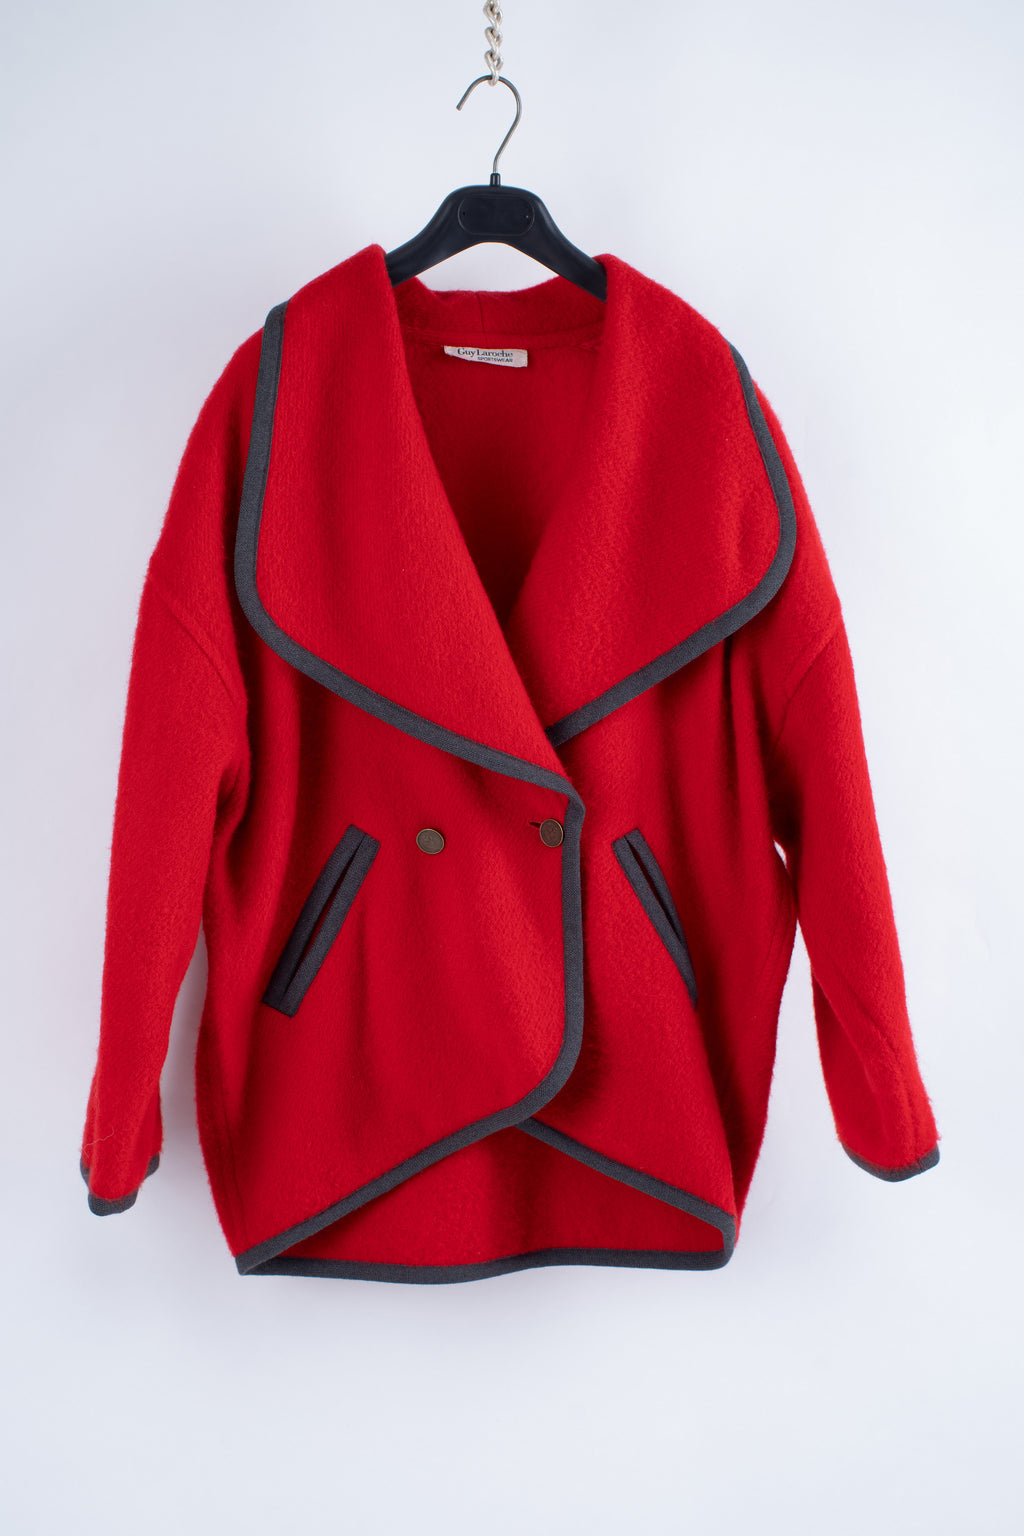 Guy Laroche Red Wool Oversized Jacket, M